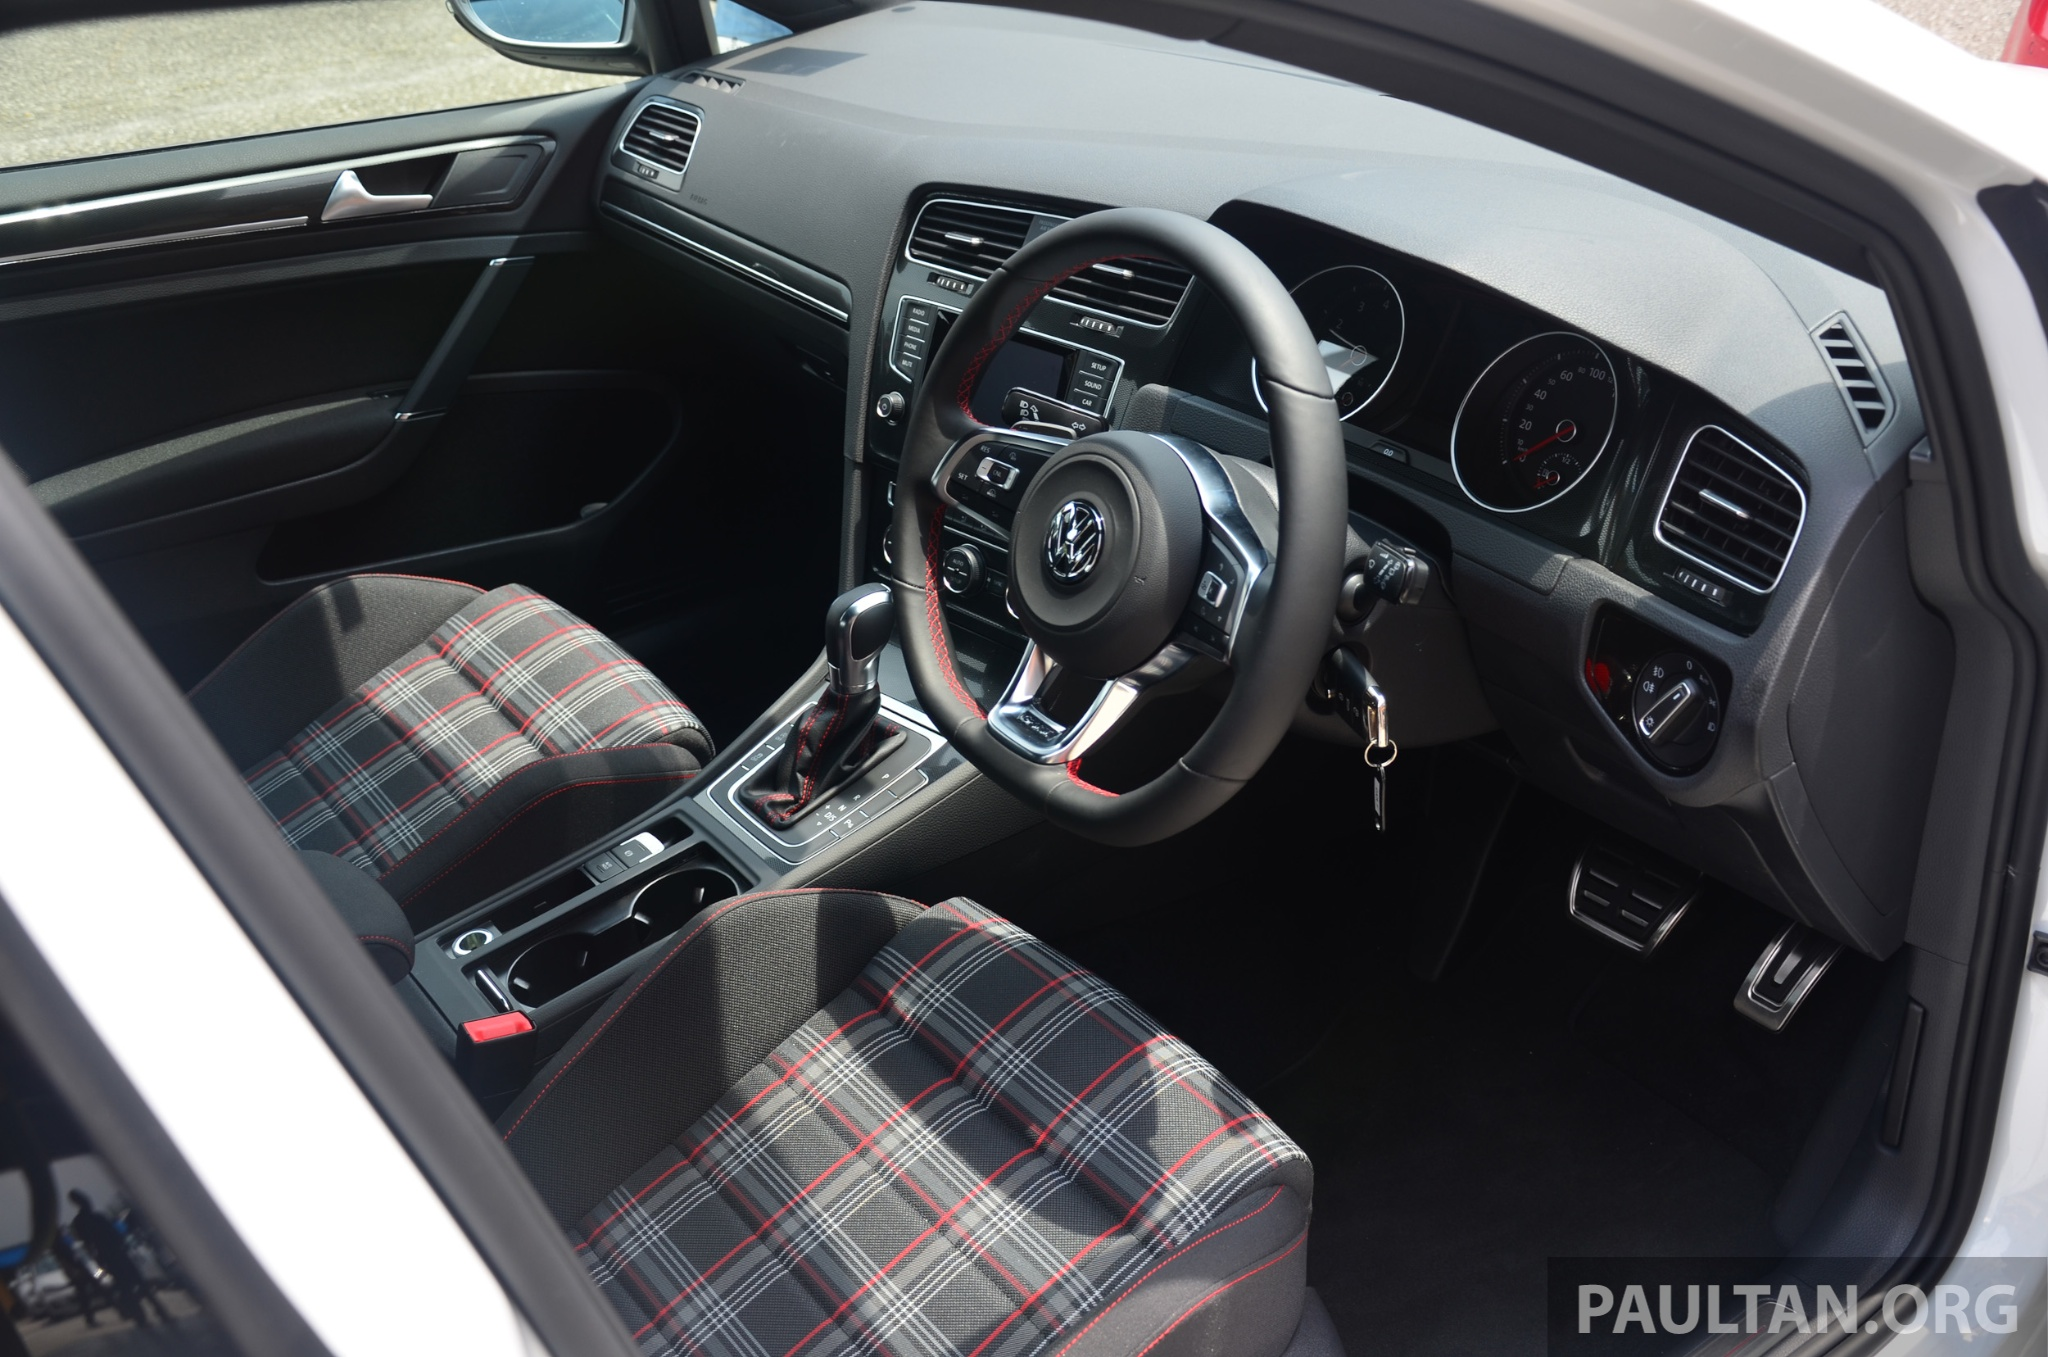 Volkswagen Golf Gti Mk7 Introduced From Rm210k Image 194227